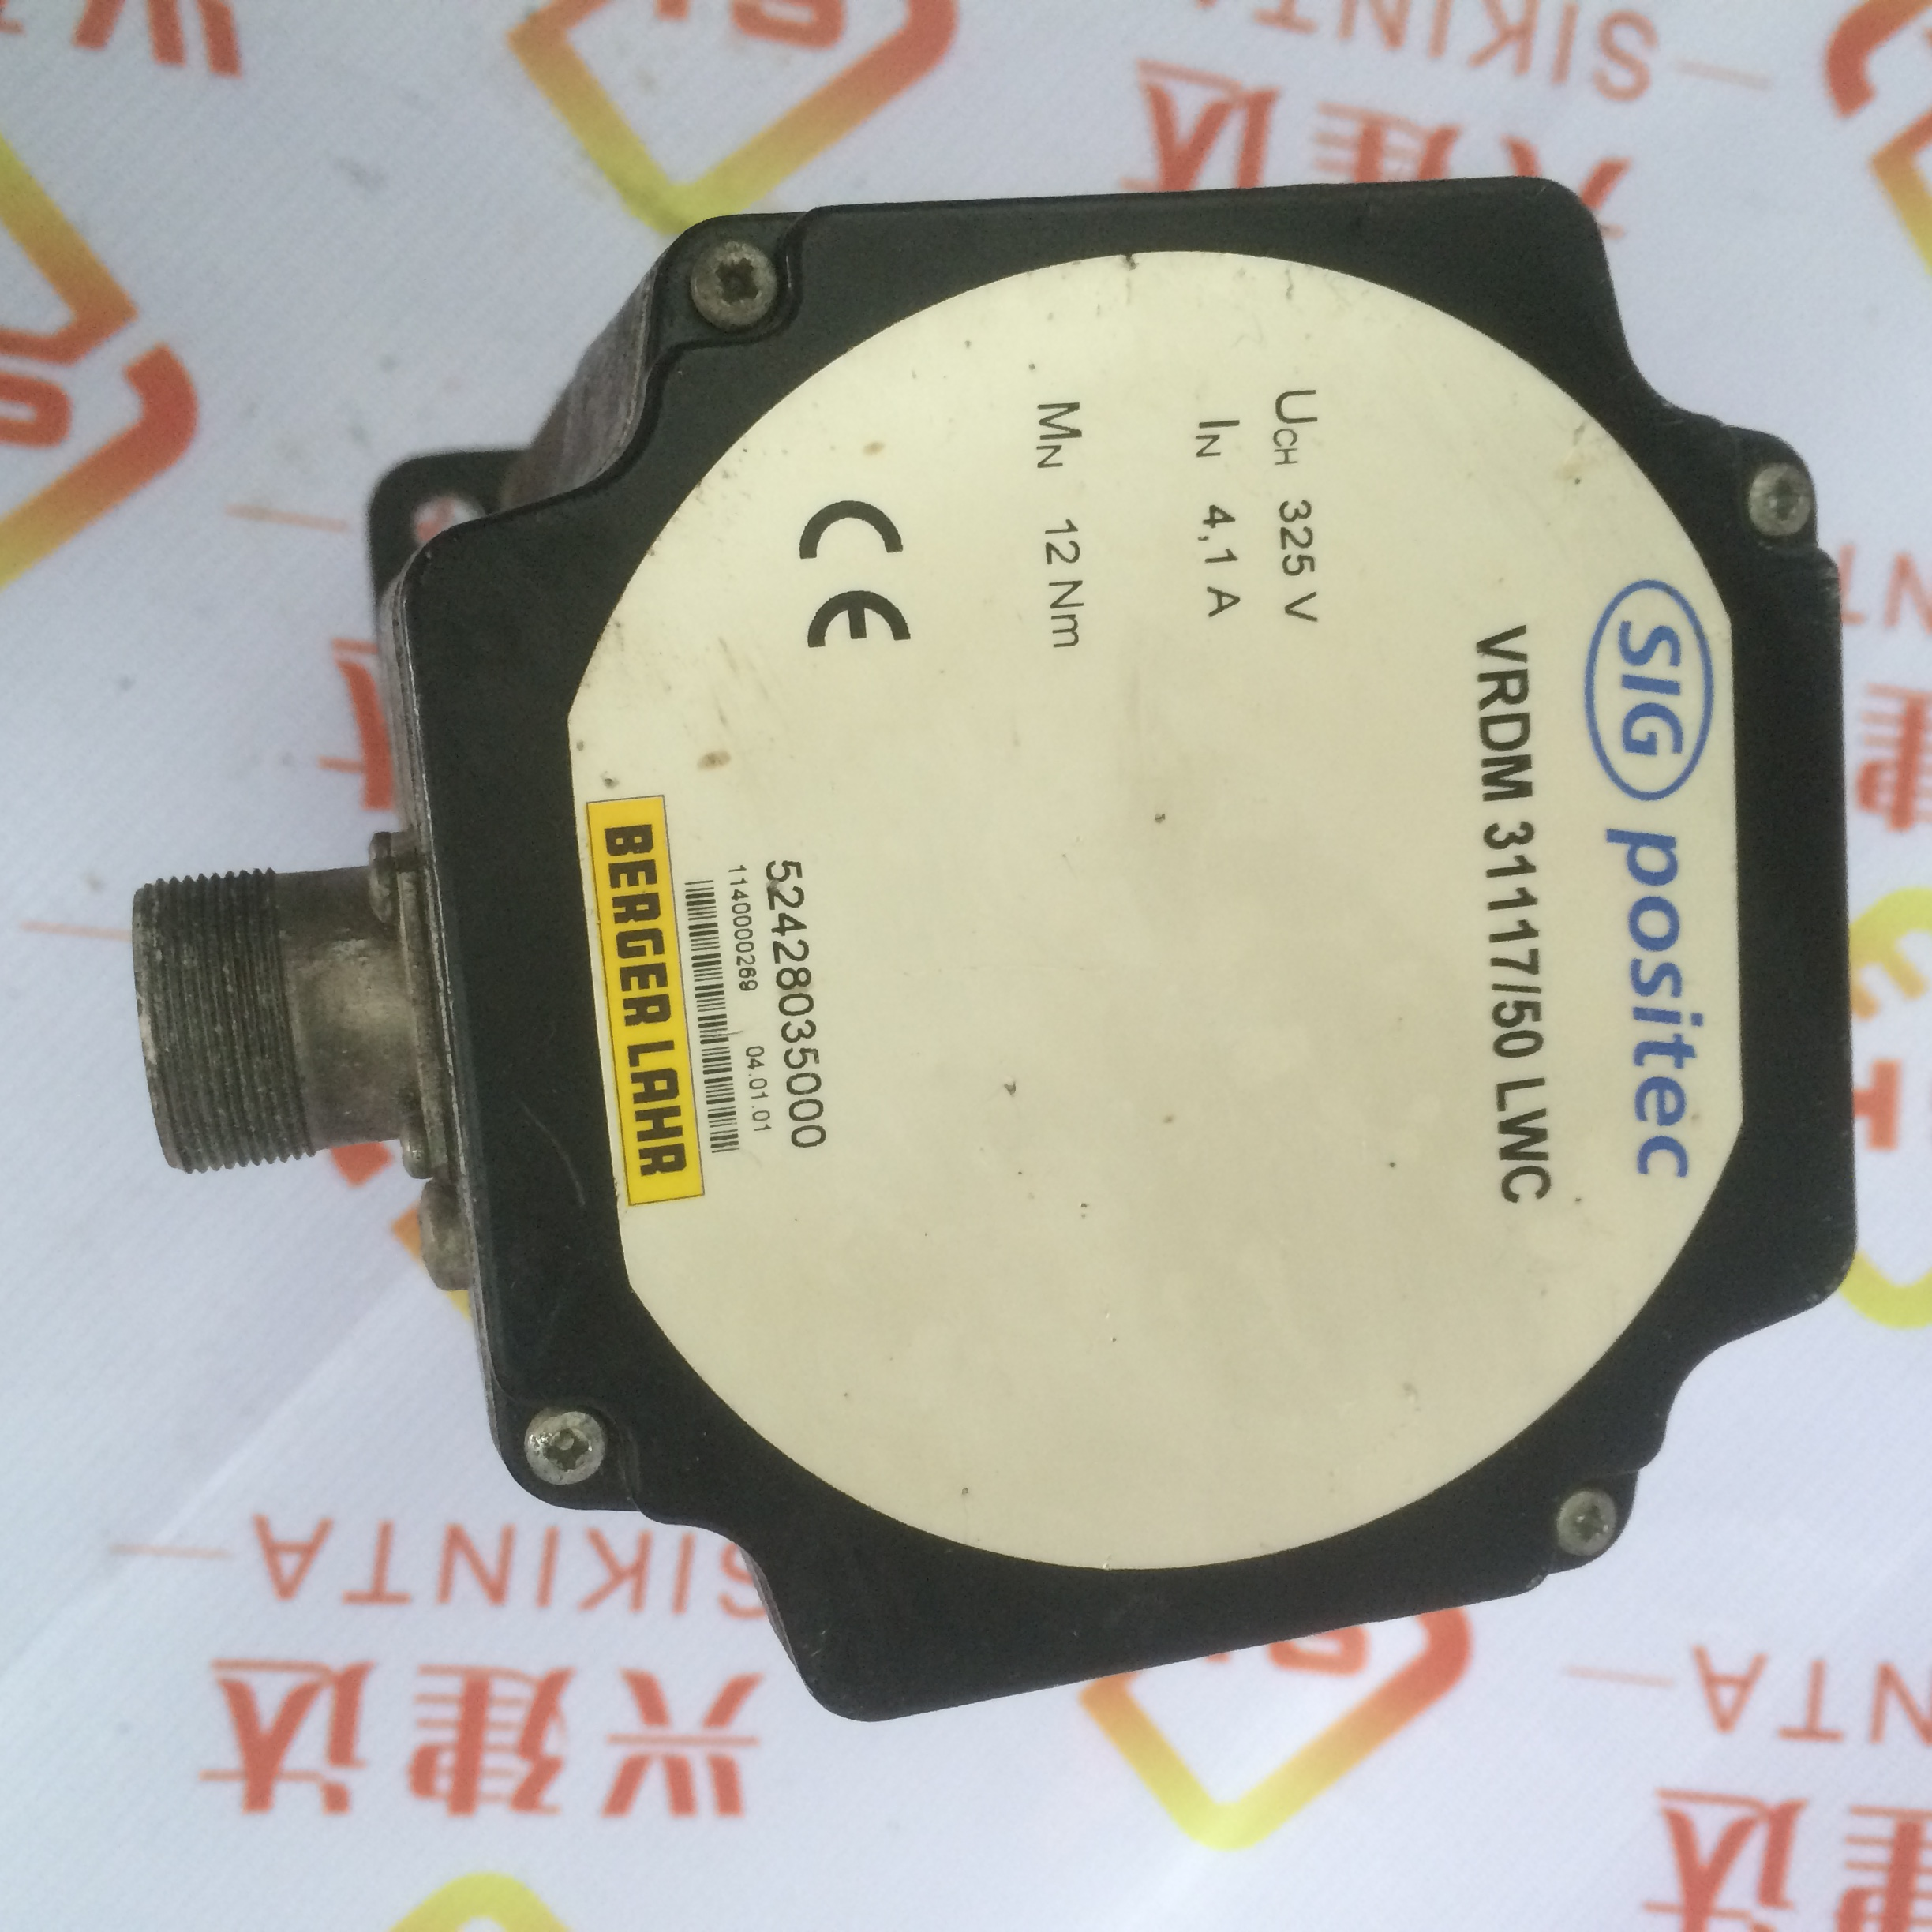 BERGER LAHR VRDM 31117/50 LWC used in good condition